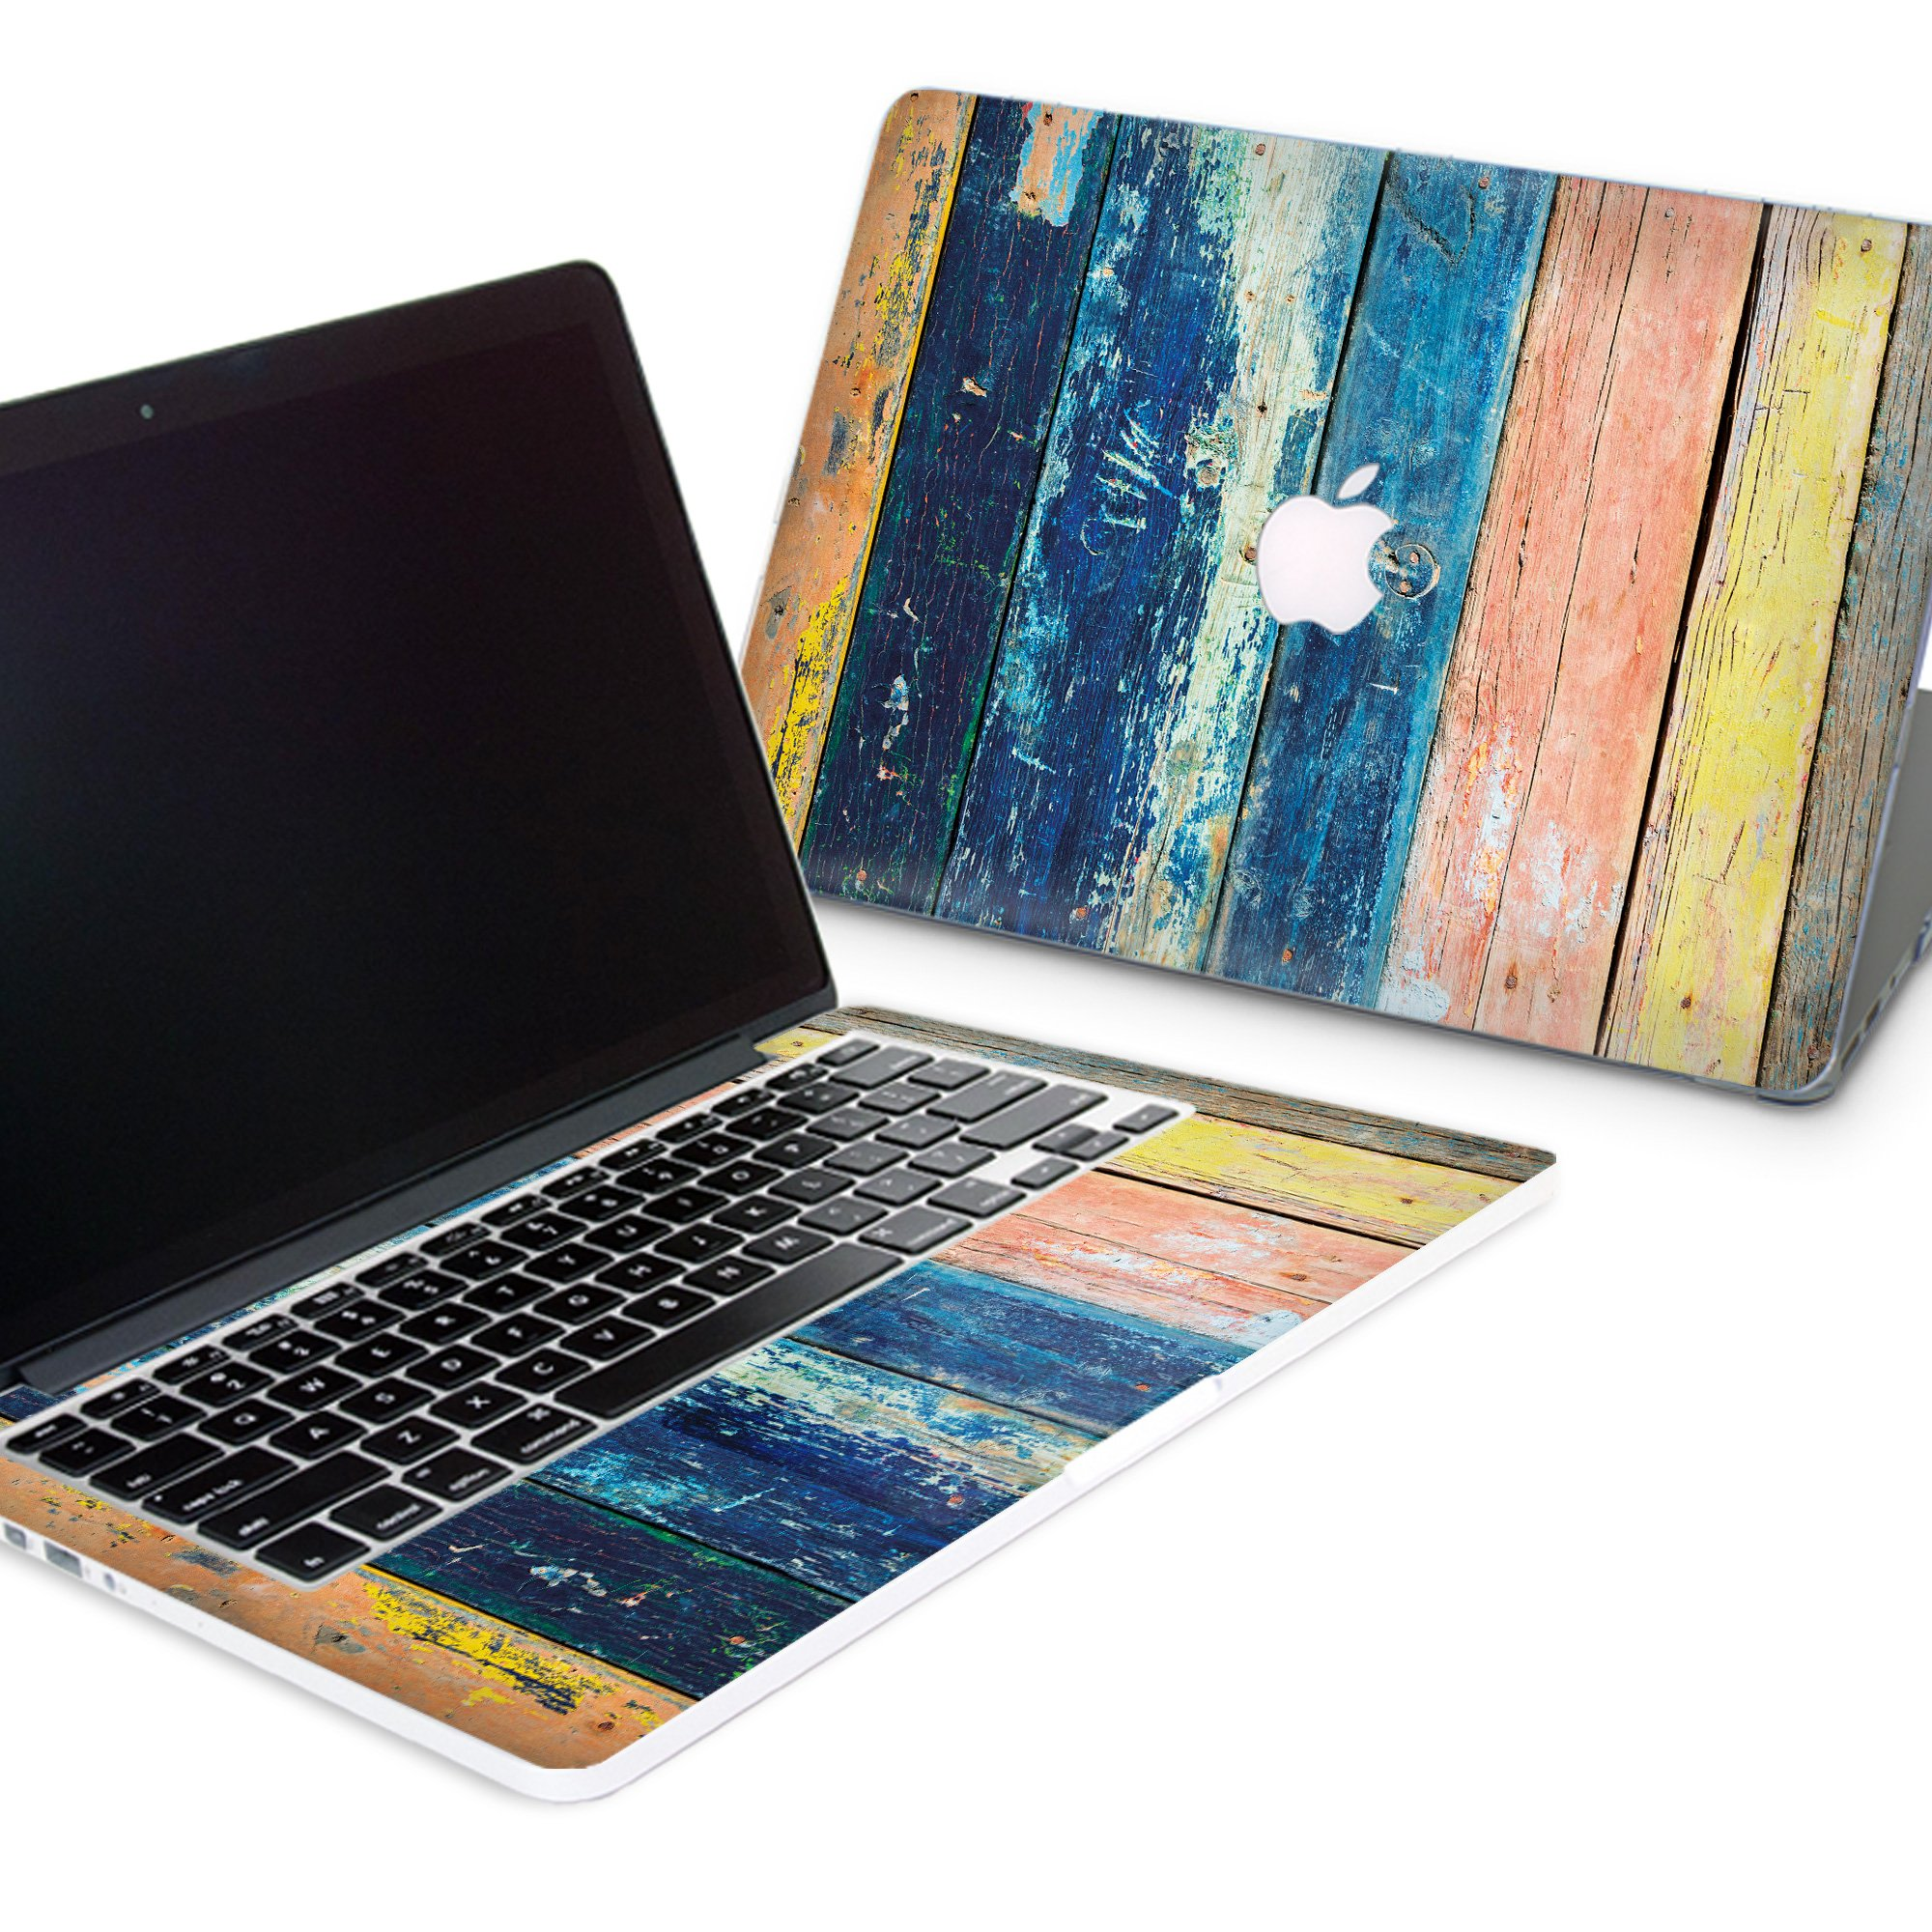 ZizzStore Macbook Hard Case and Keyboard Decal Set Protective Hard Shell with Vinyl Sticker Around Keyboard for (Macbook Pro 15 2017/18 (A1707,A1990), Aged Painted Wood)